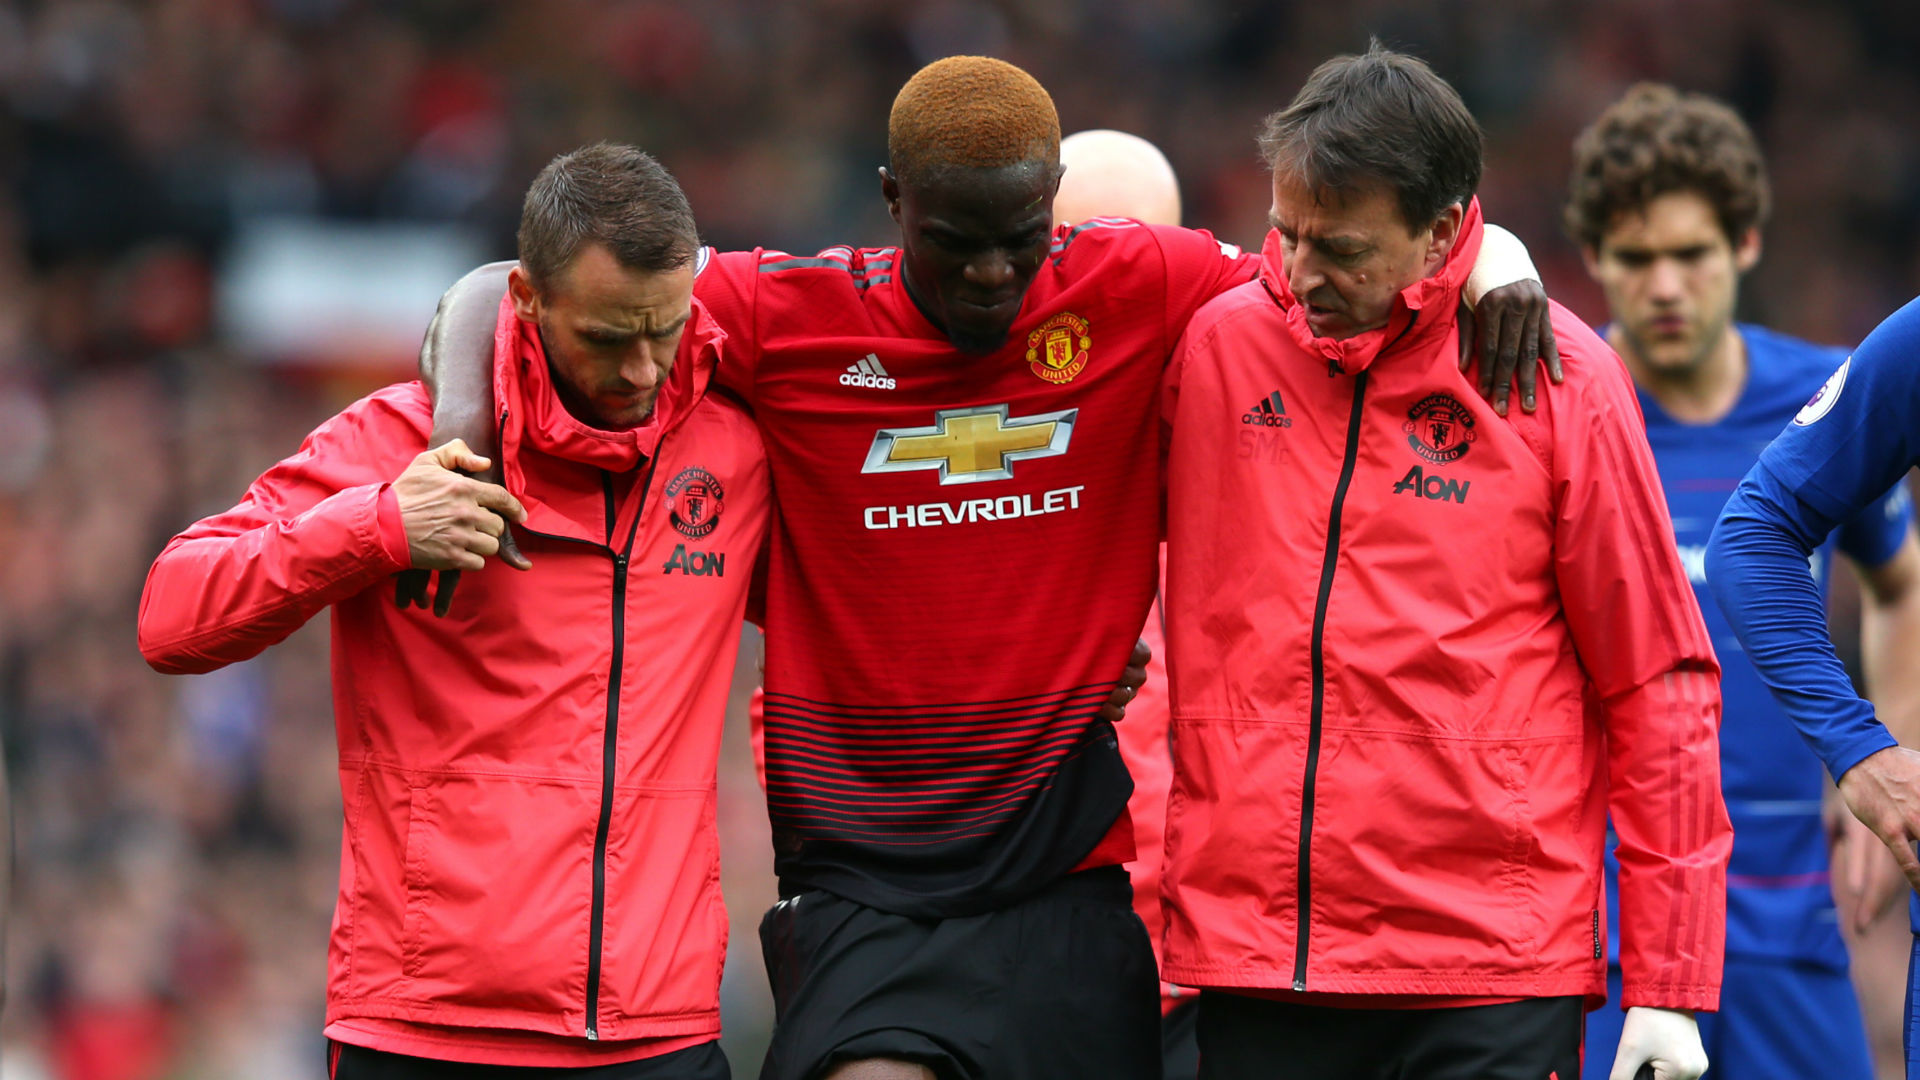 Ole Gunnar Solskjaer gives latest Man United injury update on Eric Bailly